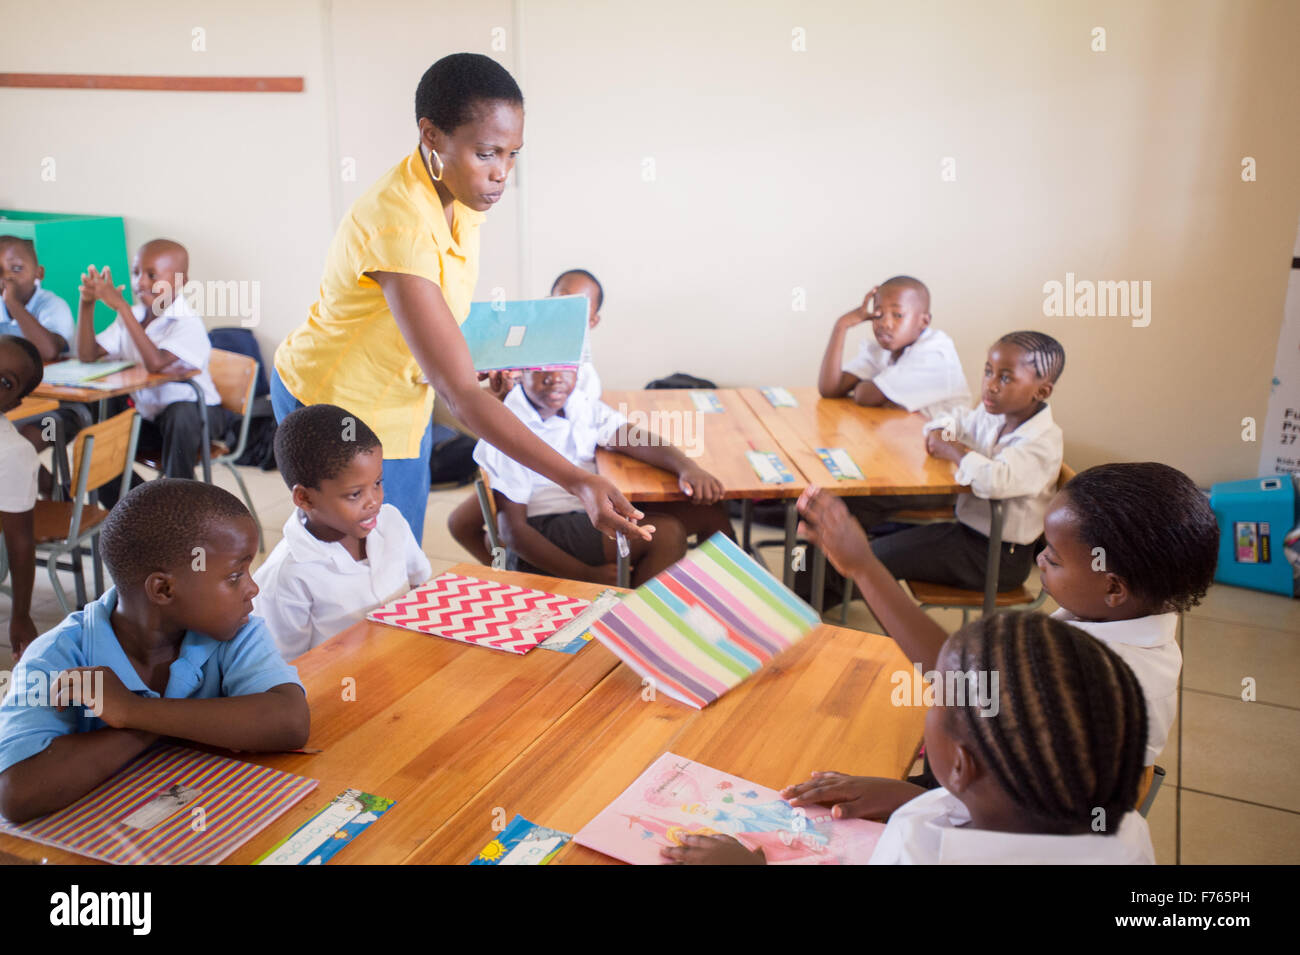 SOUTH AFRICA- Teacher handing out folders in classroom. - Stock Image